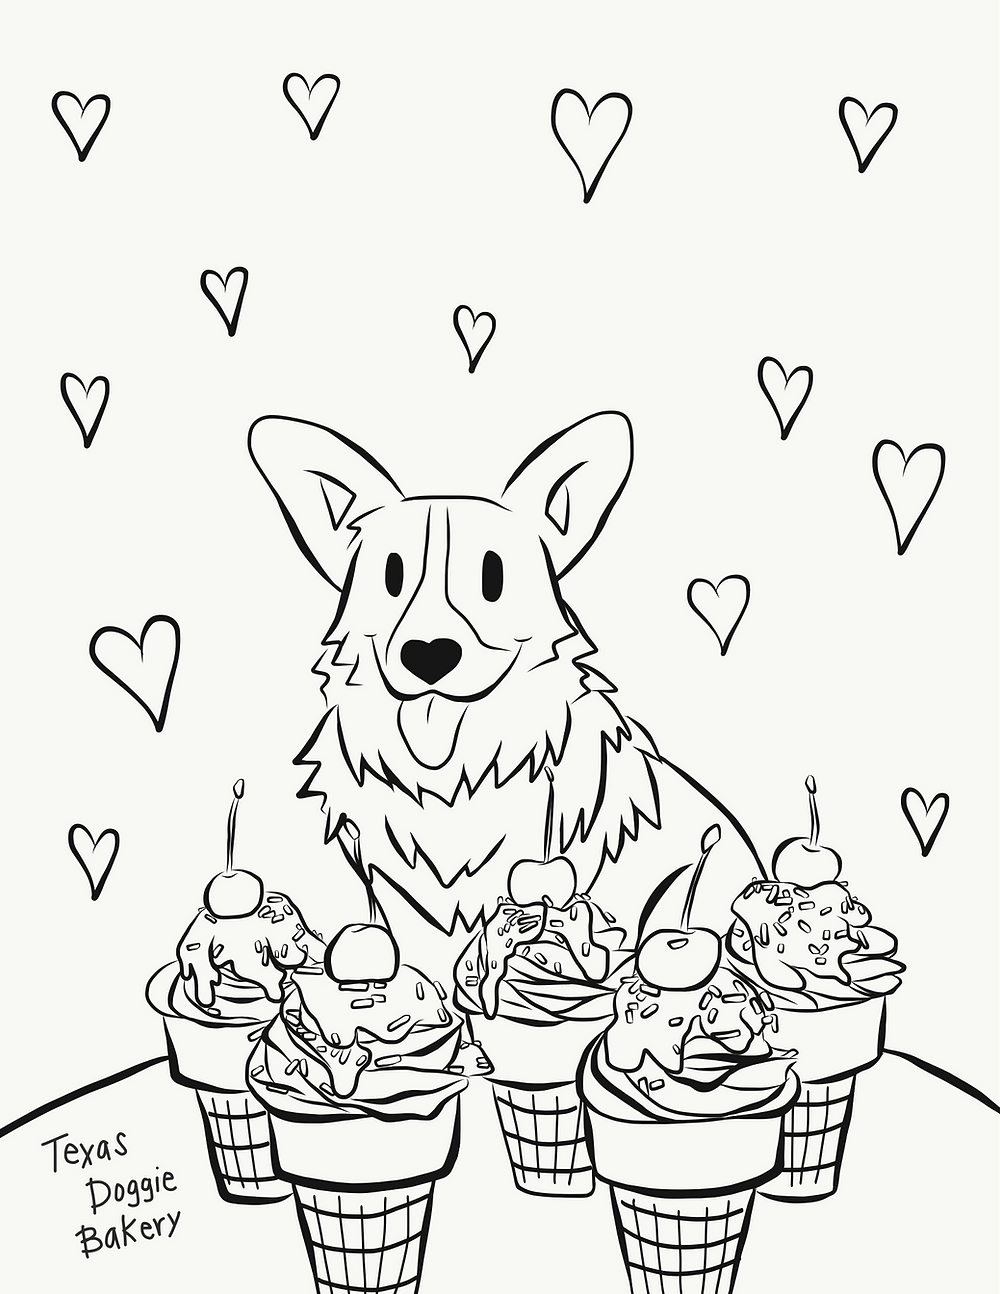 - Free Printable Corgi Coloring Pages From Texas Doggie Bakery